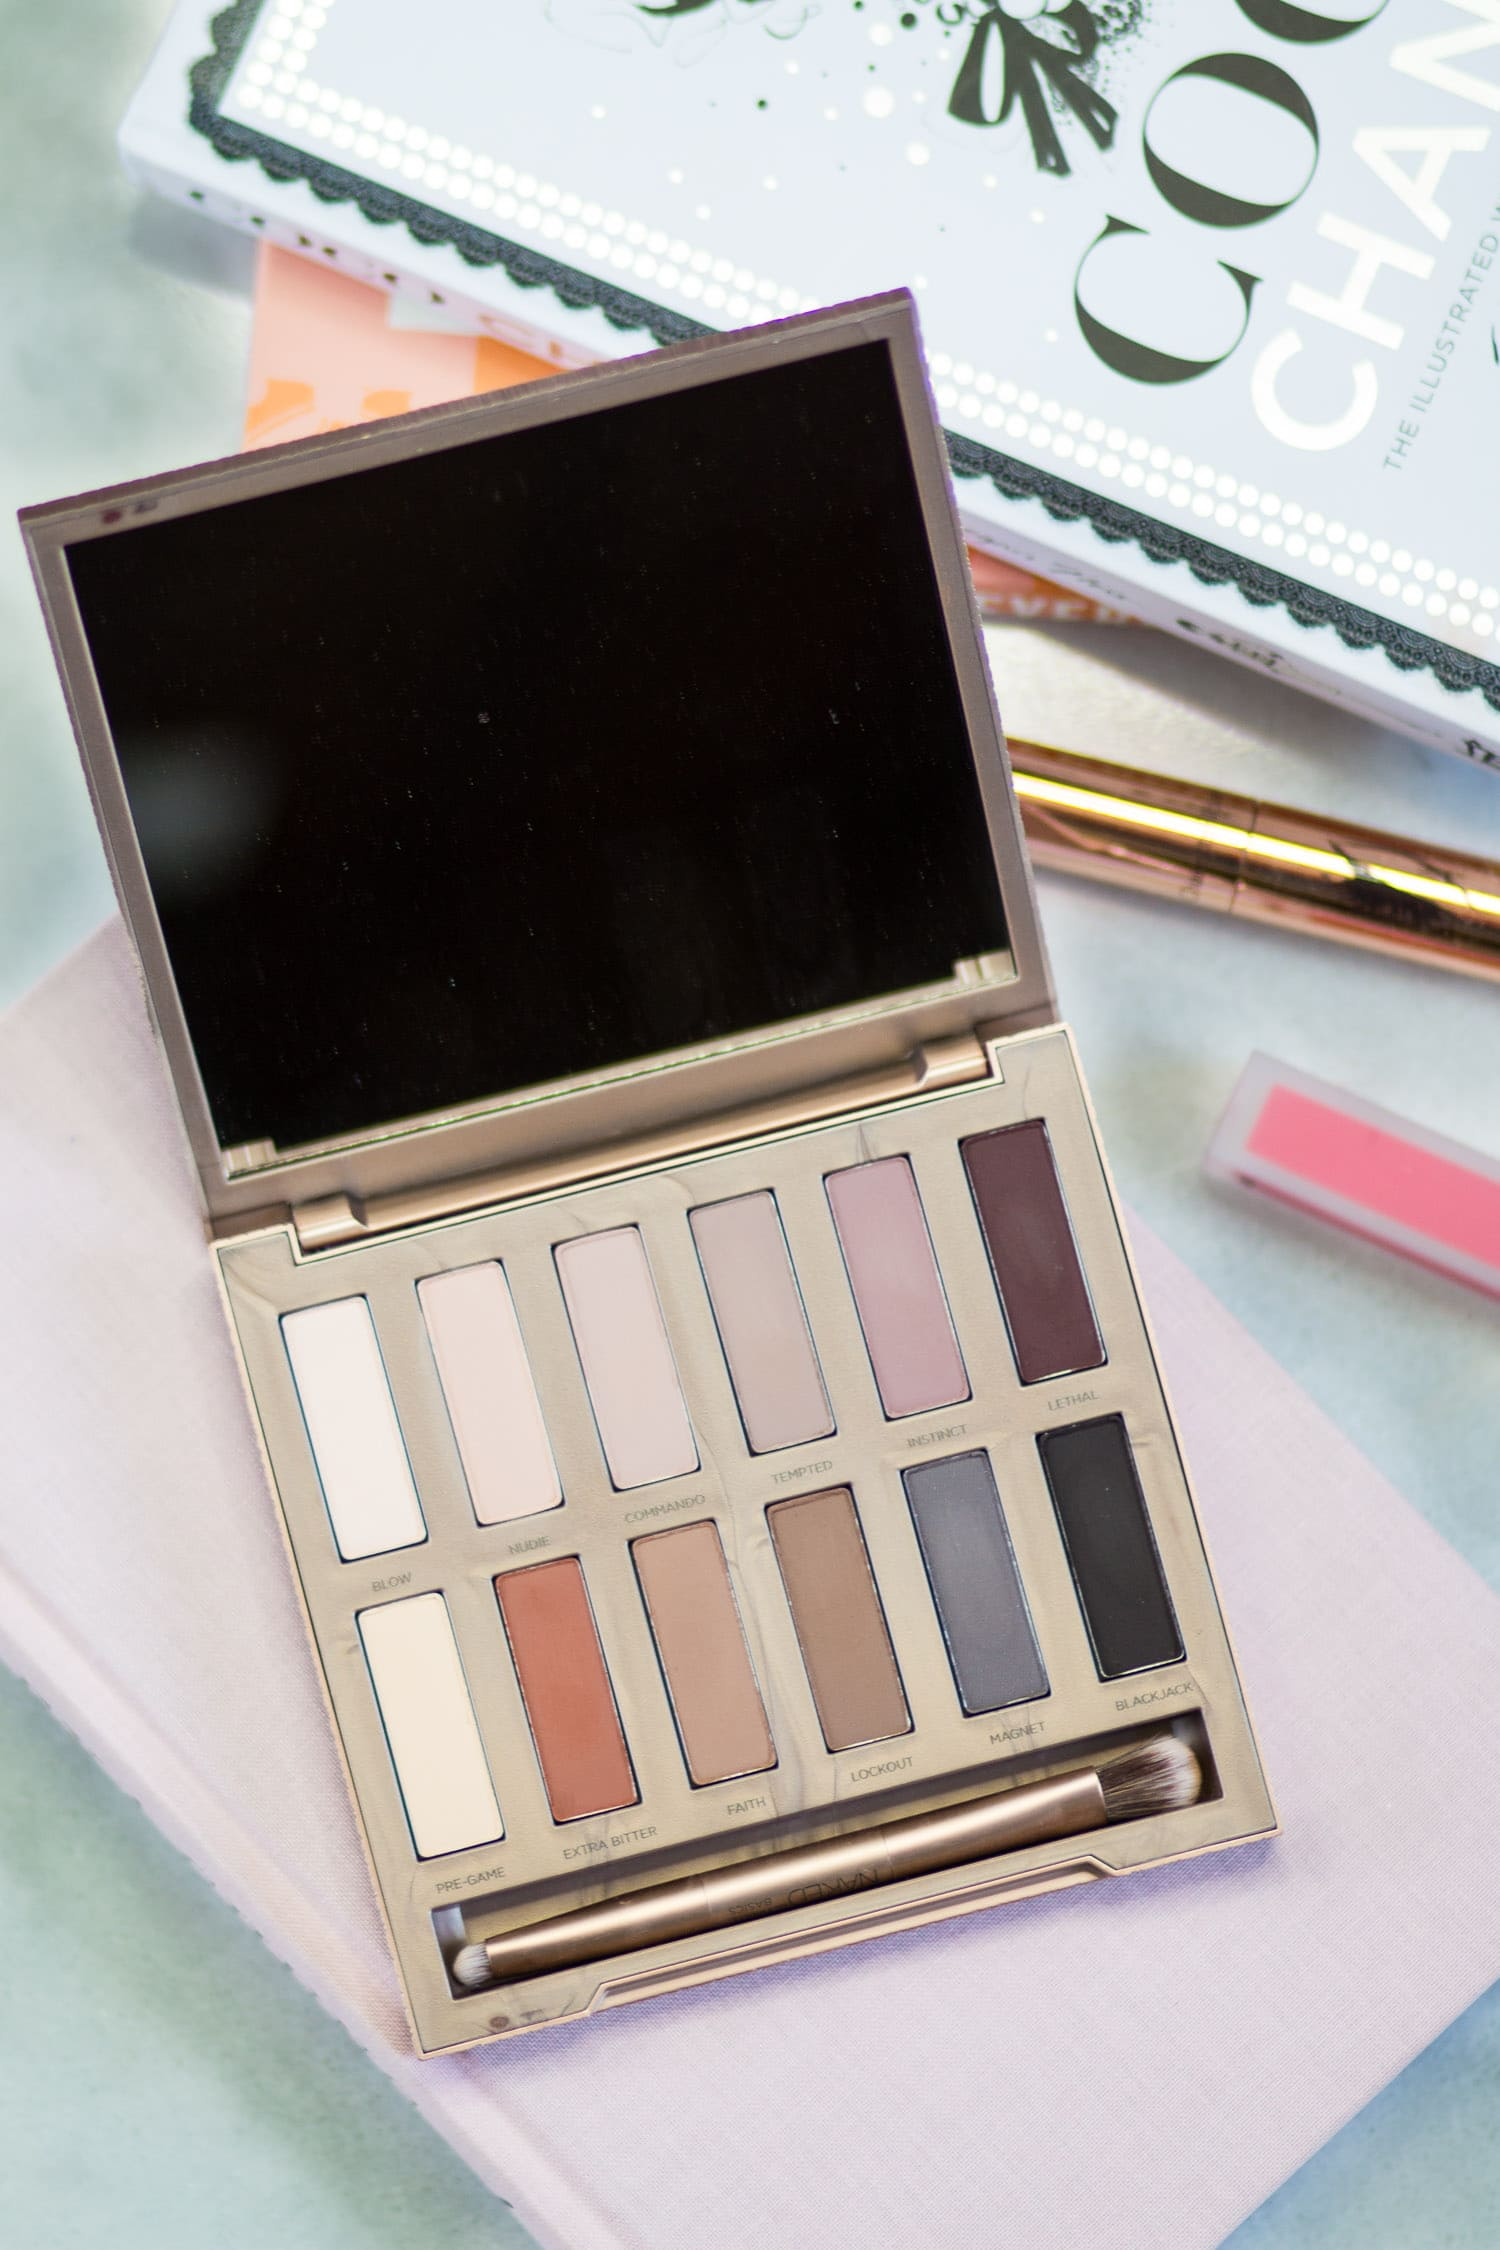 urban-decay-naked-ultimate-basics-palette-review-swatches-8939